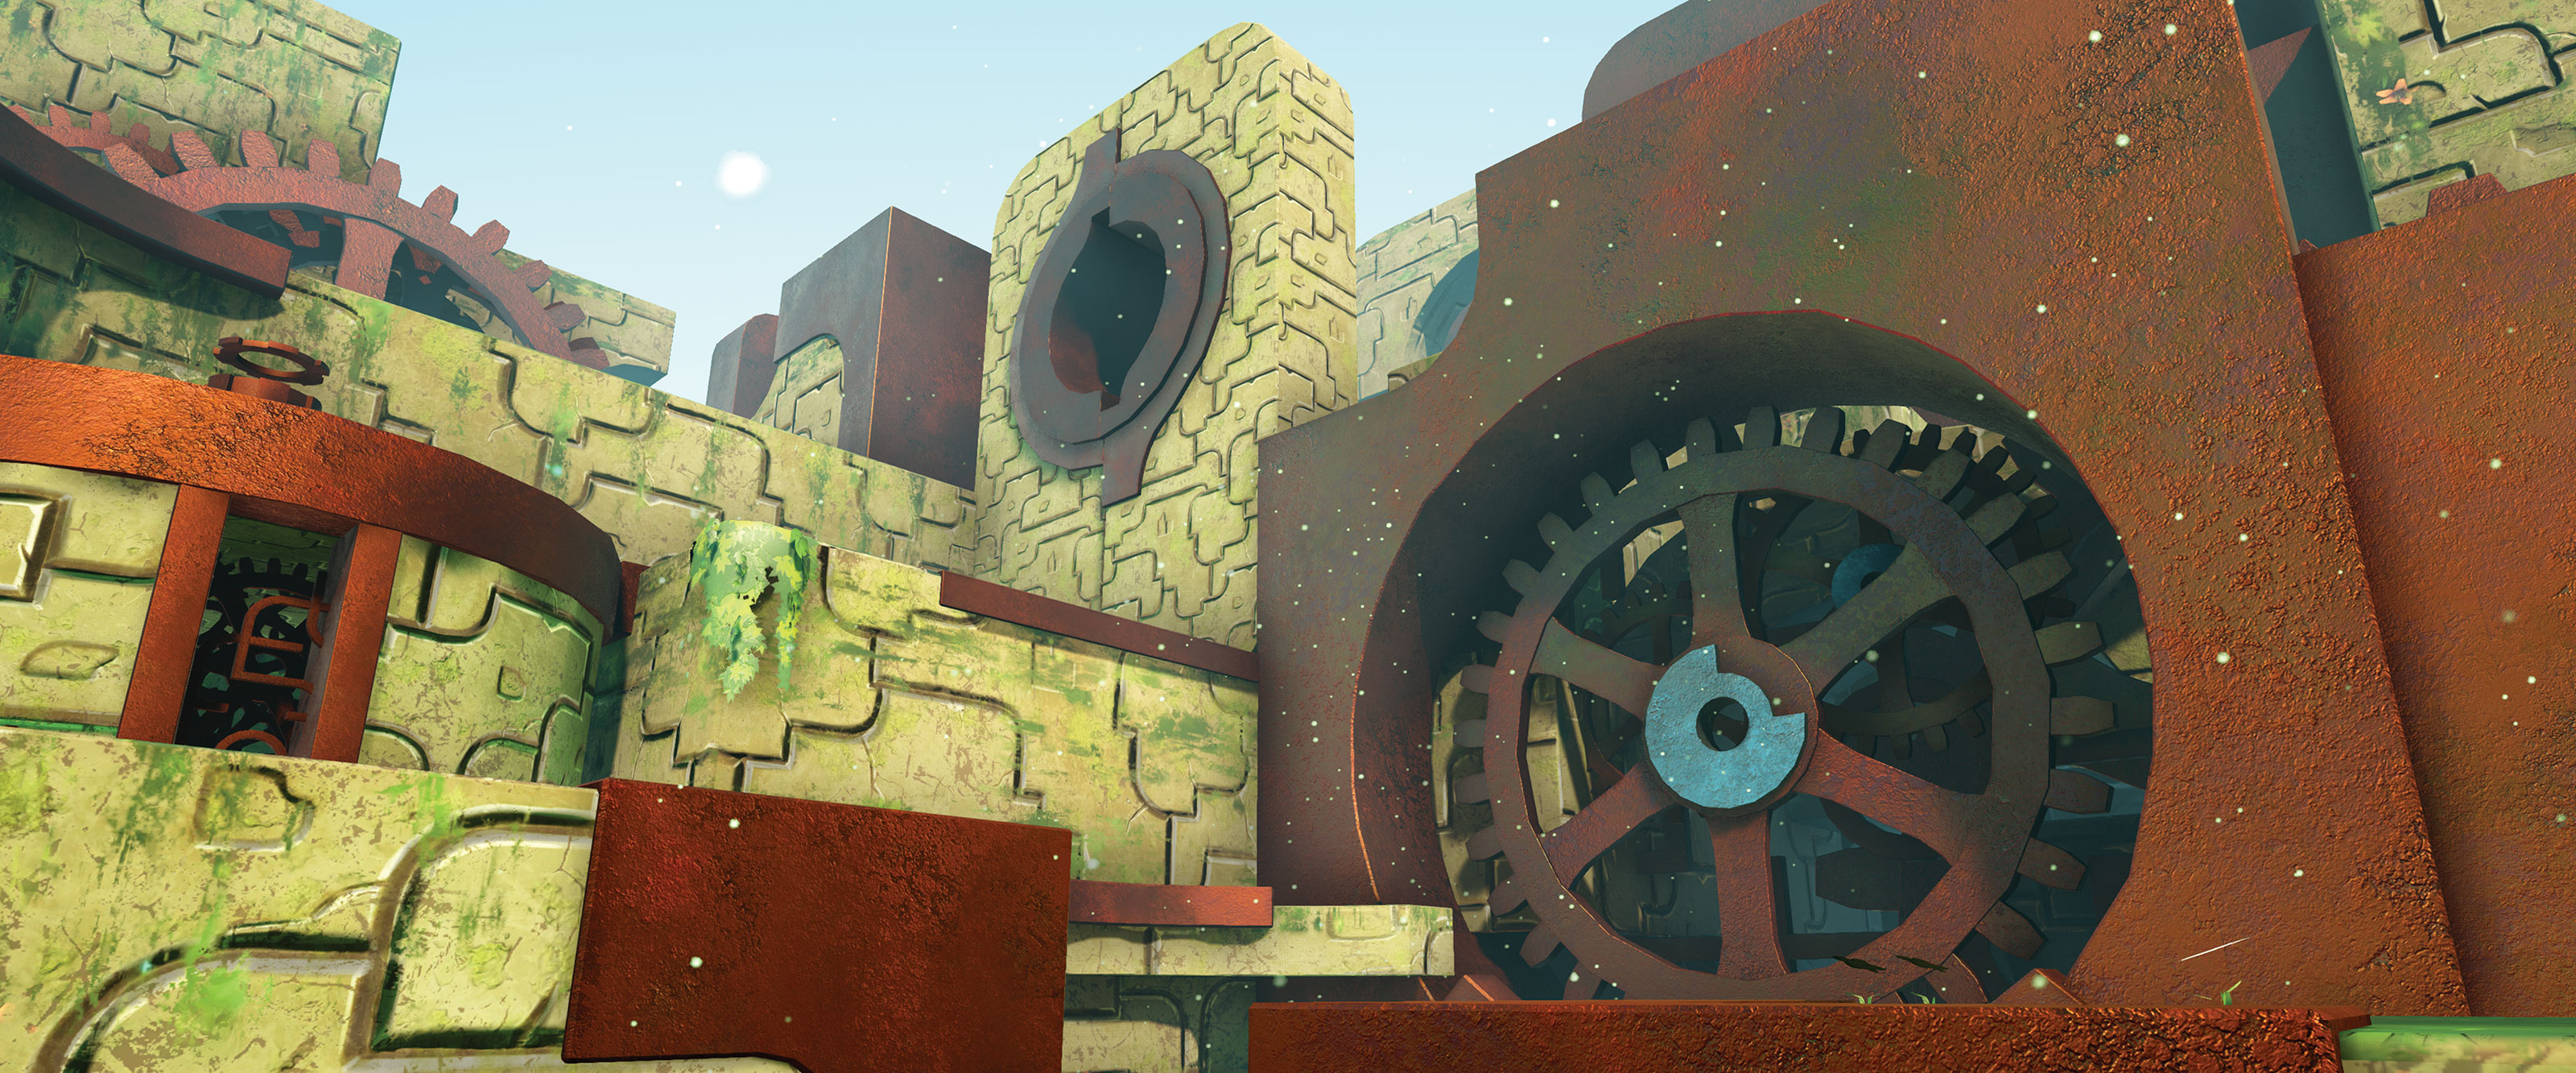 A DigiPen student game screenshot of an ancient stone structure housing giant, rusty gears.